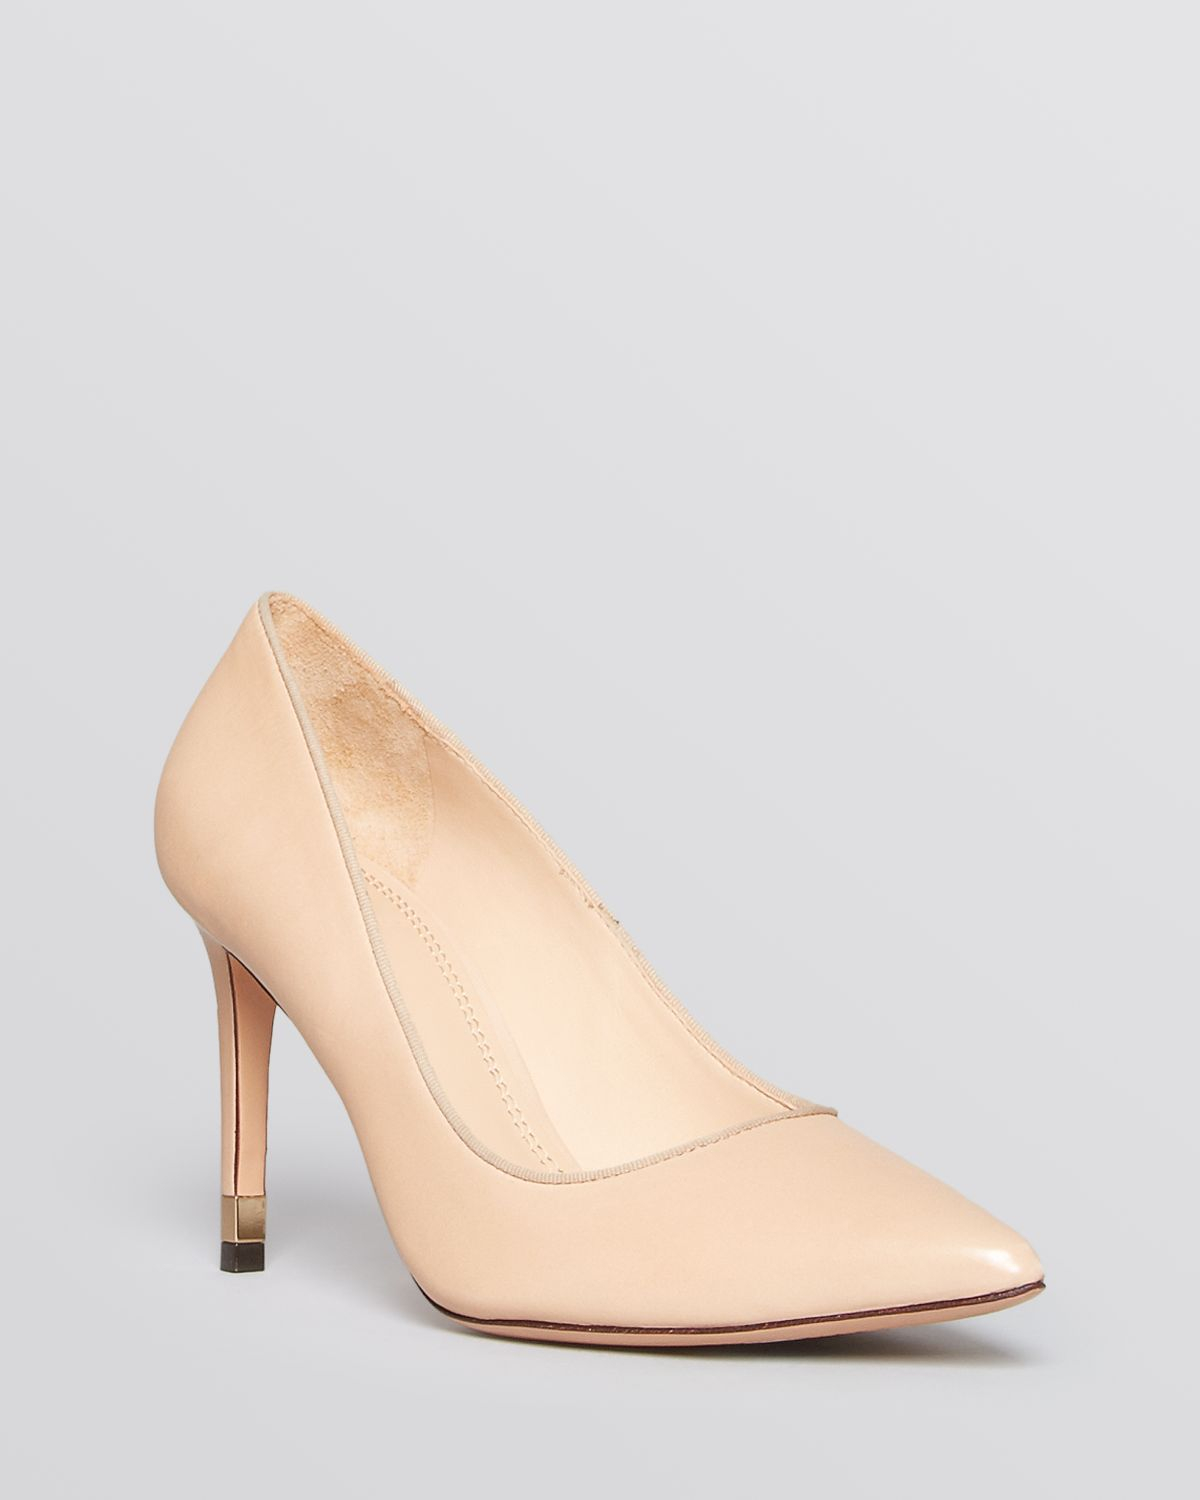 discount comfortable outlet purchase Tory Burch Embossed Leather Pointed-Toe Pumps nicekicks cheap price p3Gr7